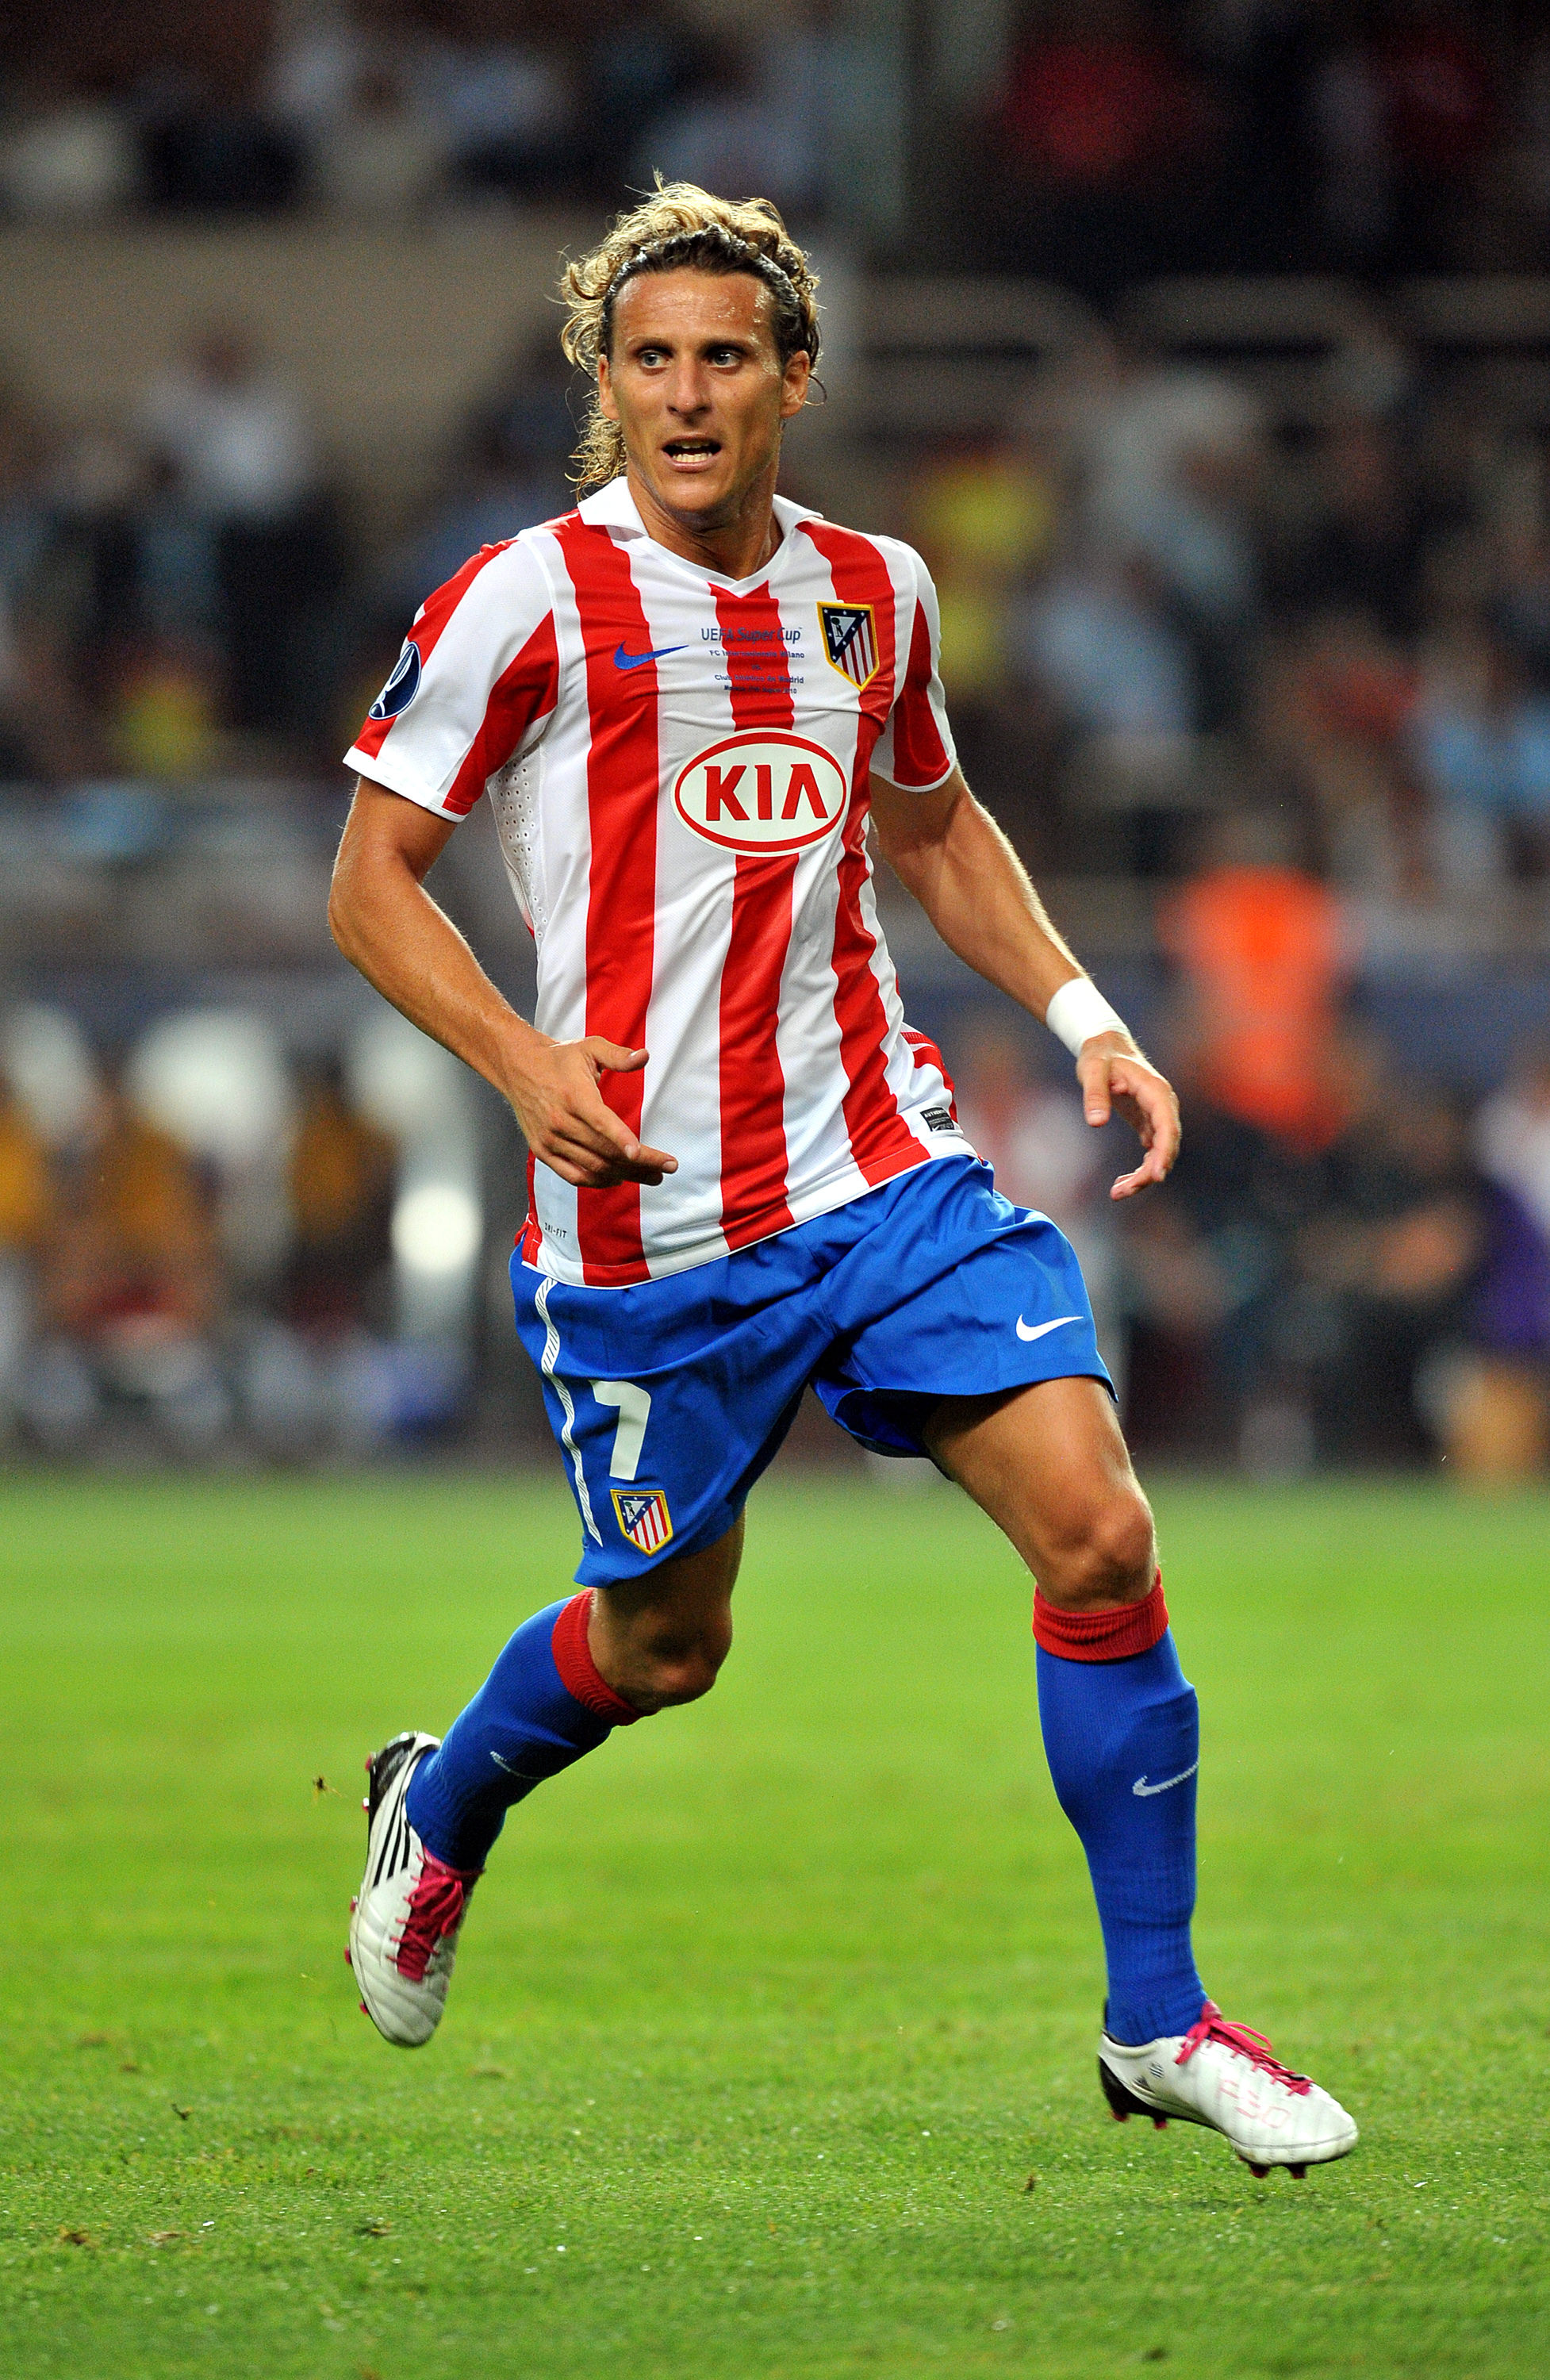 Diego_Forlan_makes_a_run_off_the_ball_playing_for_Atletico_football4football